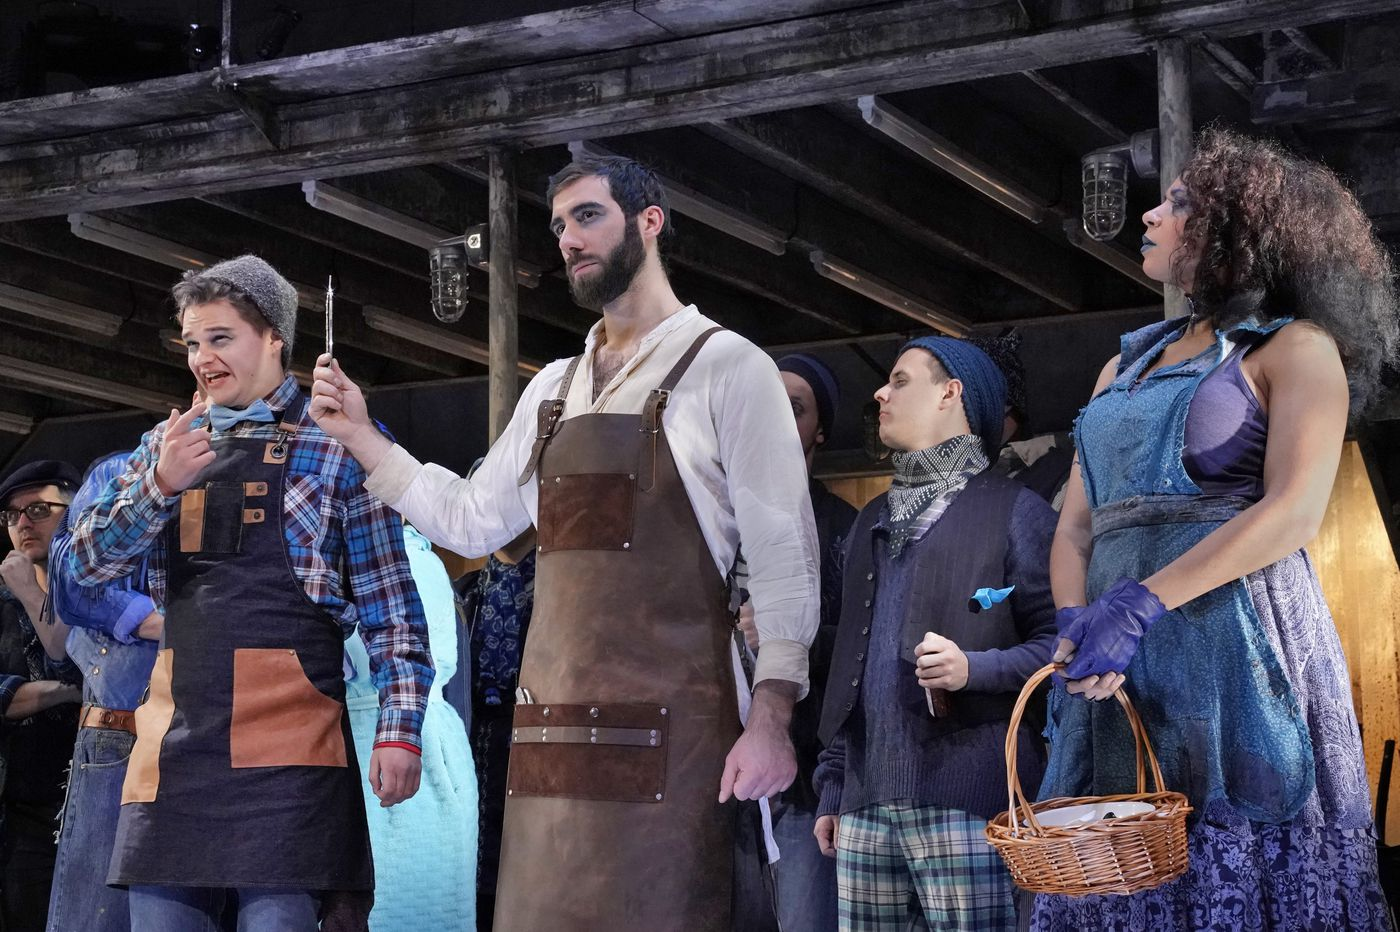 'Sweeney Todd' at the Prince*: The 'crossover' opera for newbies